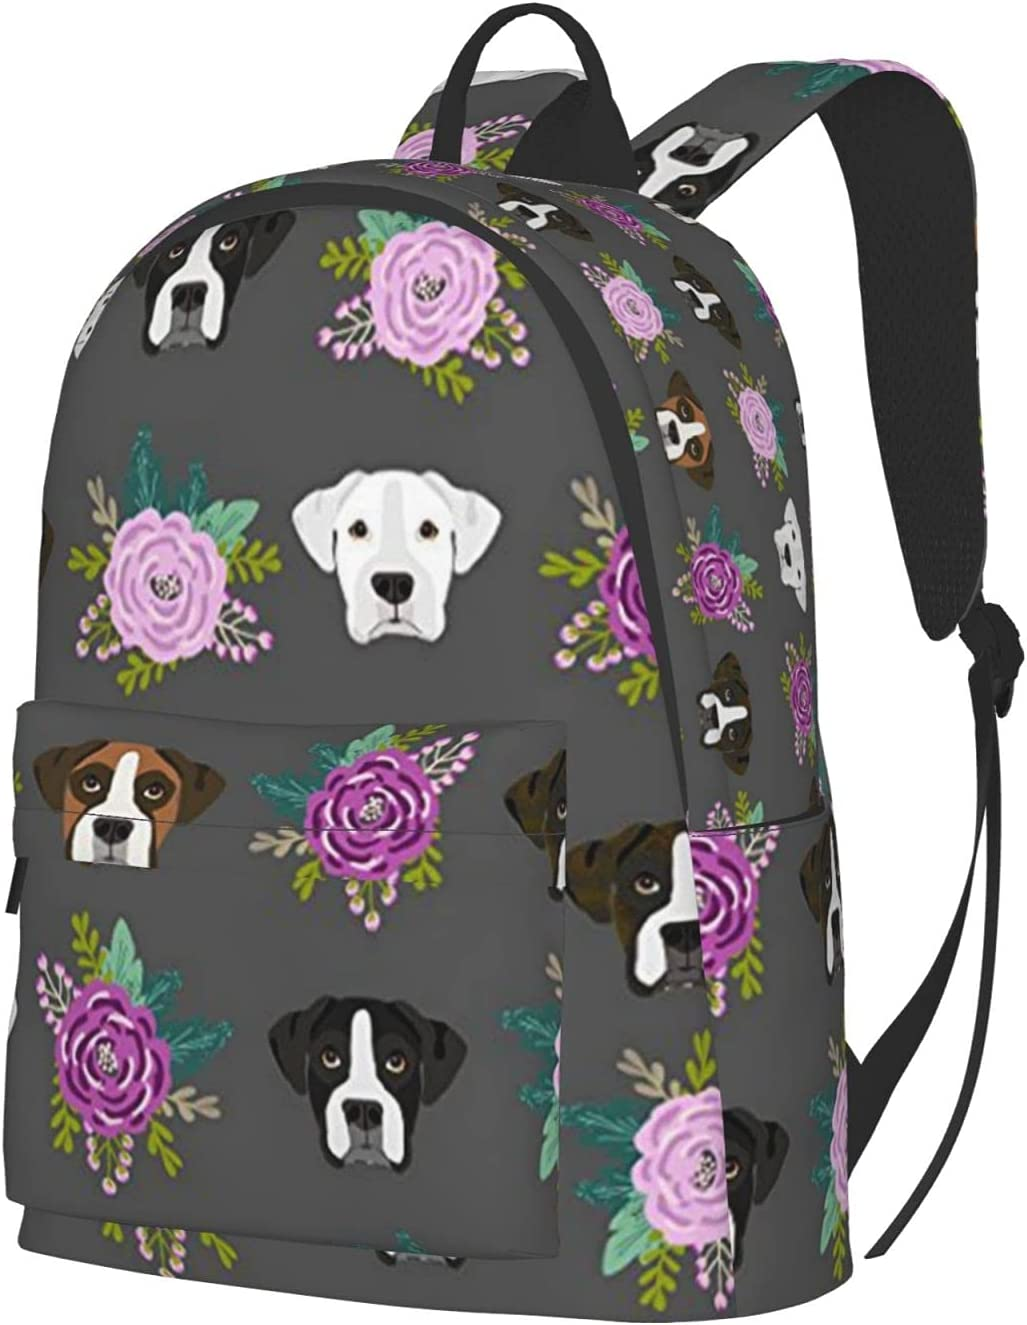 PNdeid Boxer Dogs Backpack Patterns Lightweight Fort Worth Mall Now free shipping Printed C Casual